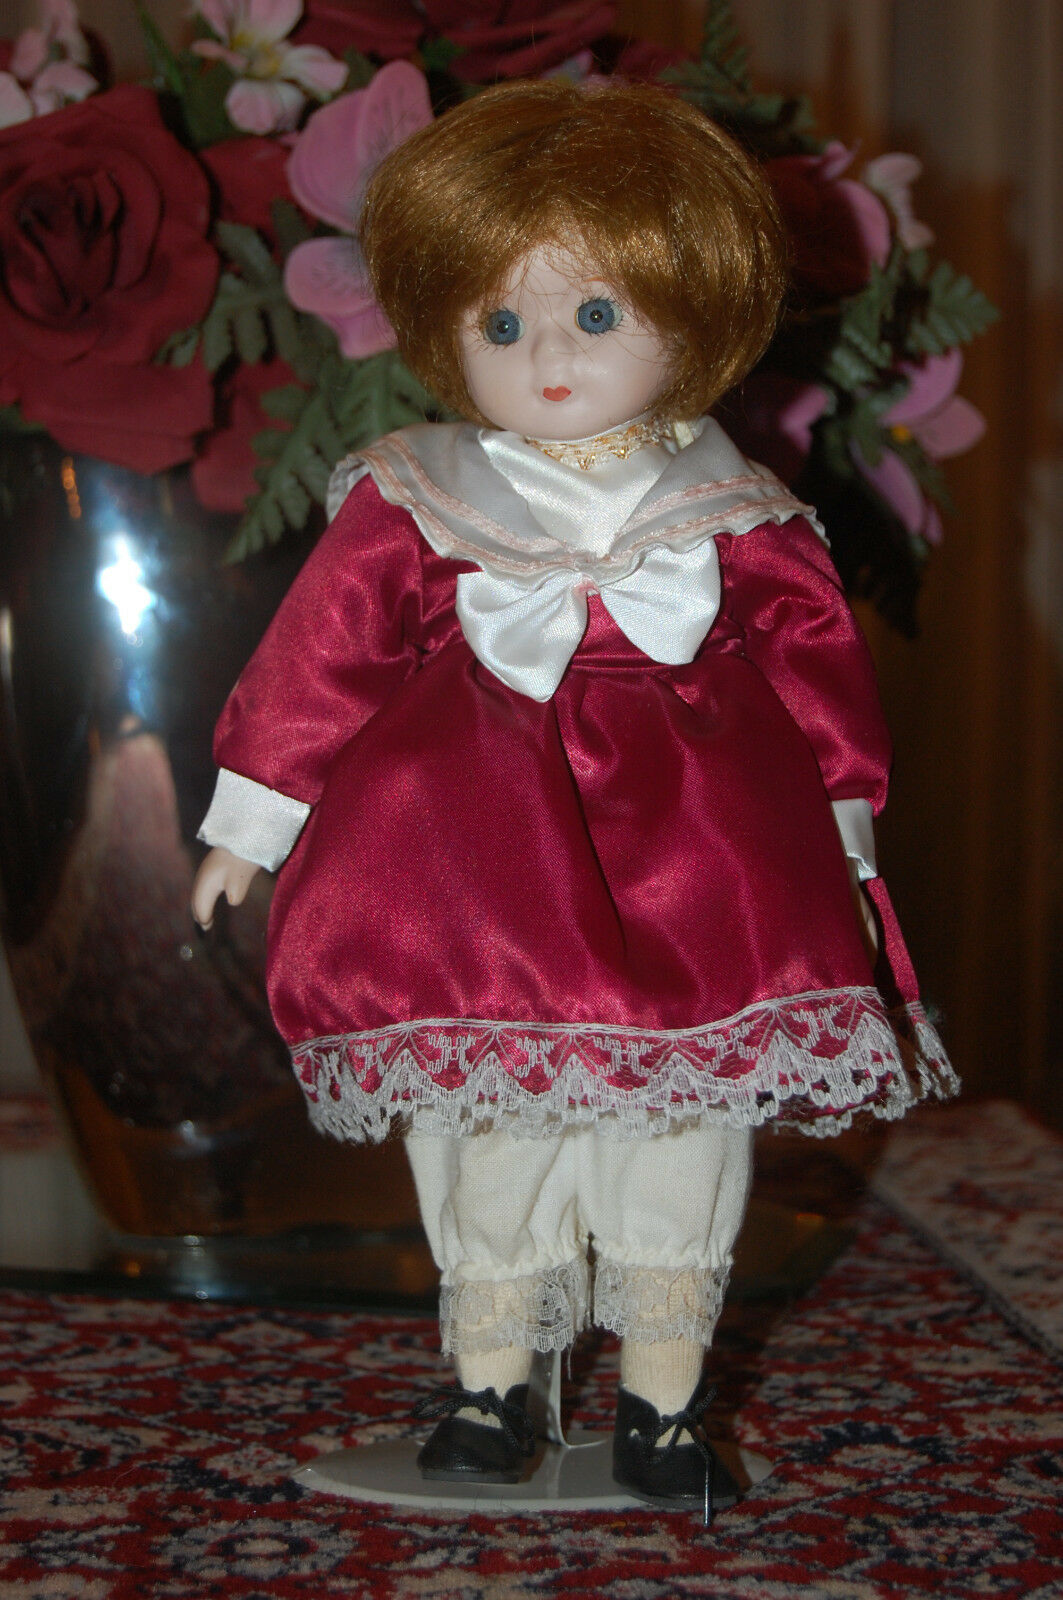 Vintage Europe Vtg Vtg Vtg Porcelain Doll rot Satin Dress 30 CM 02bfa5